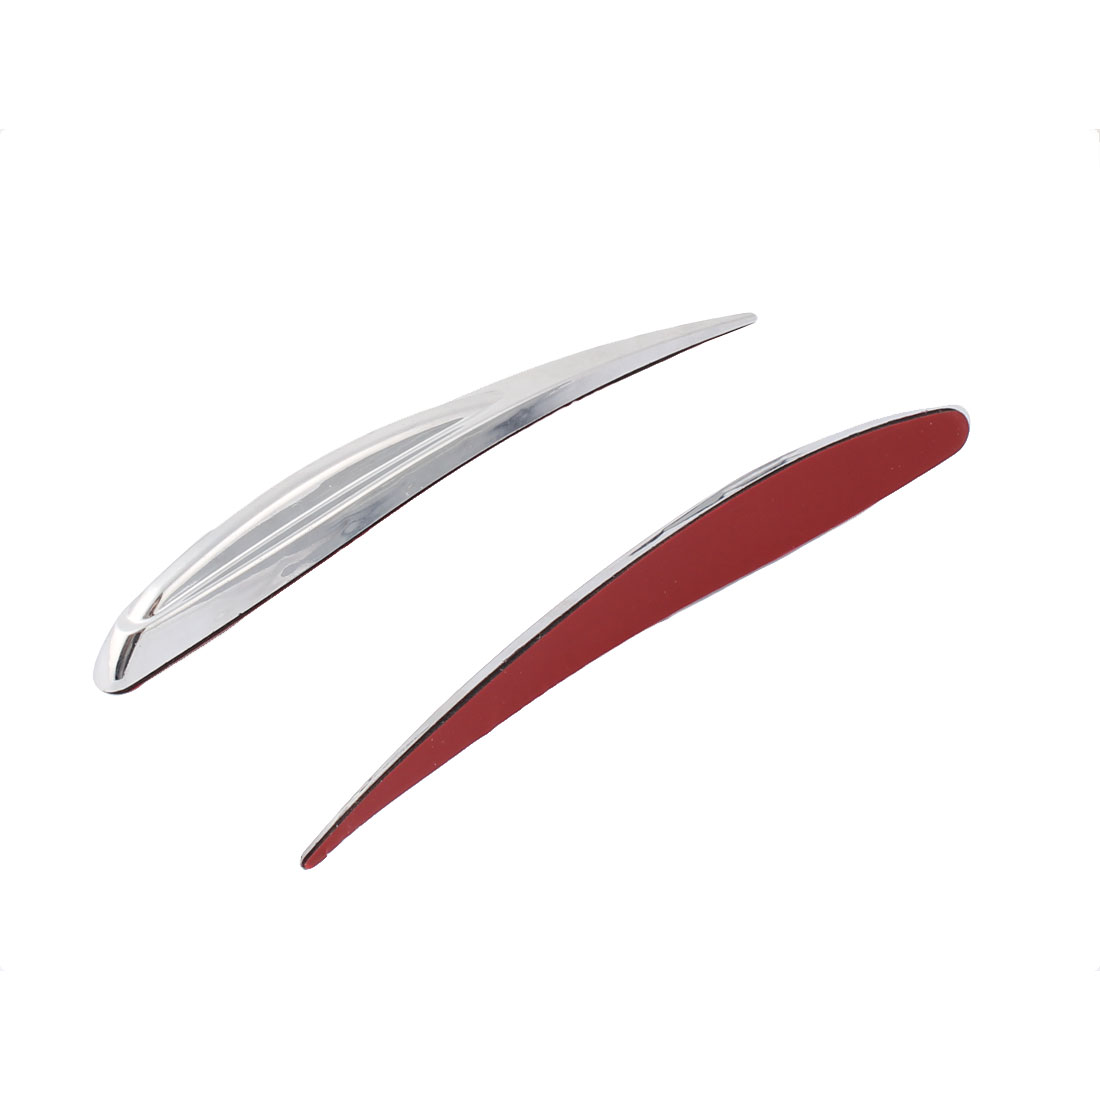 Plastic Automobile Car Door Handle Trim Molding Scratch Cover Guards 2pcs